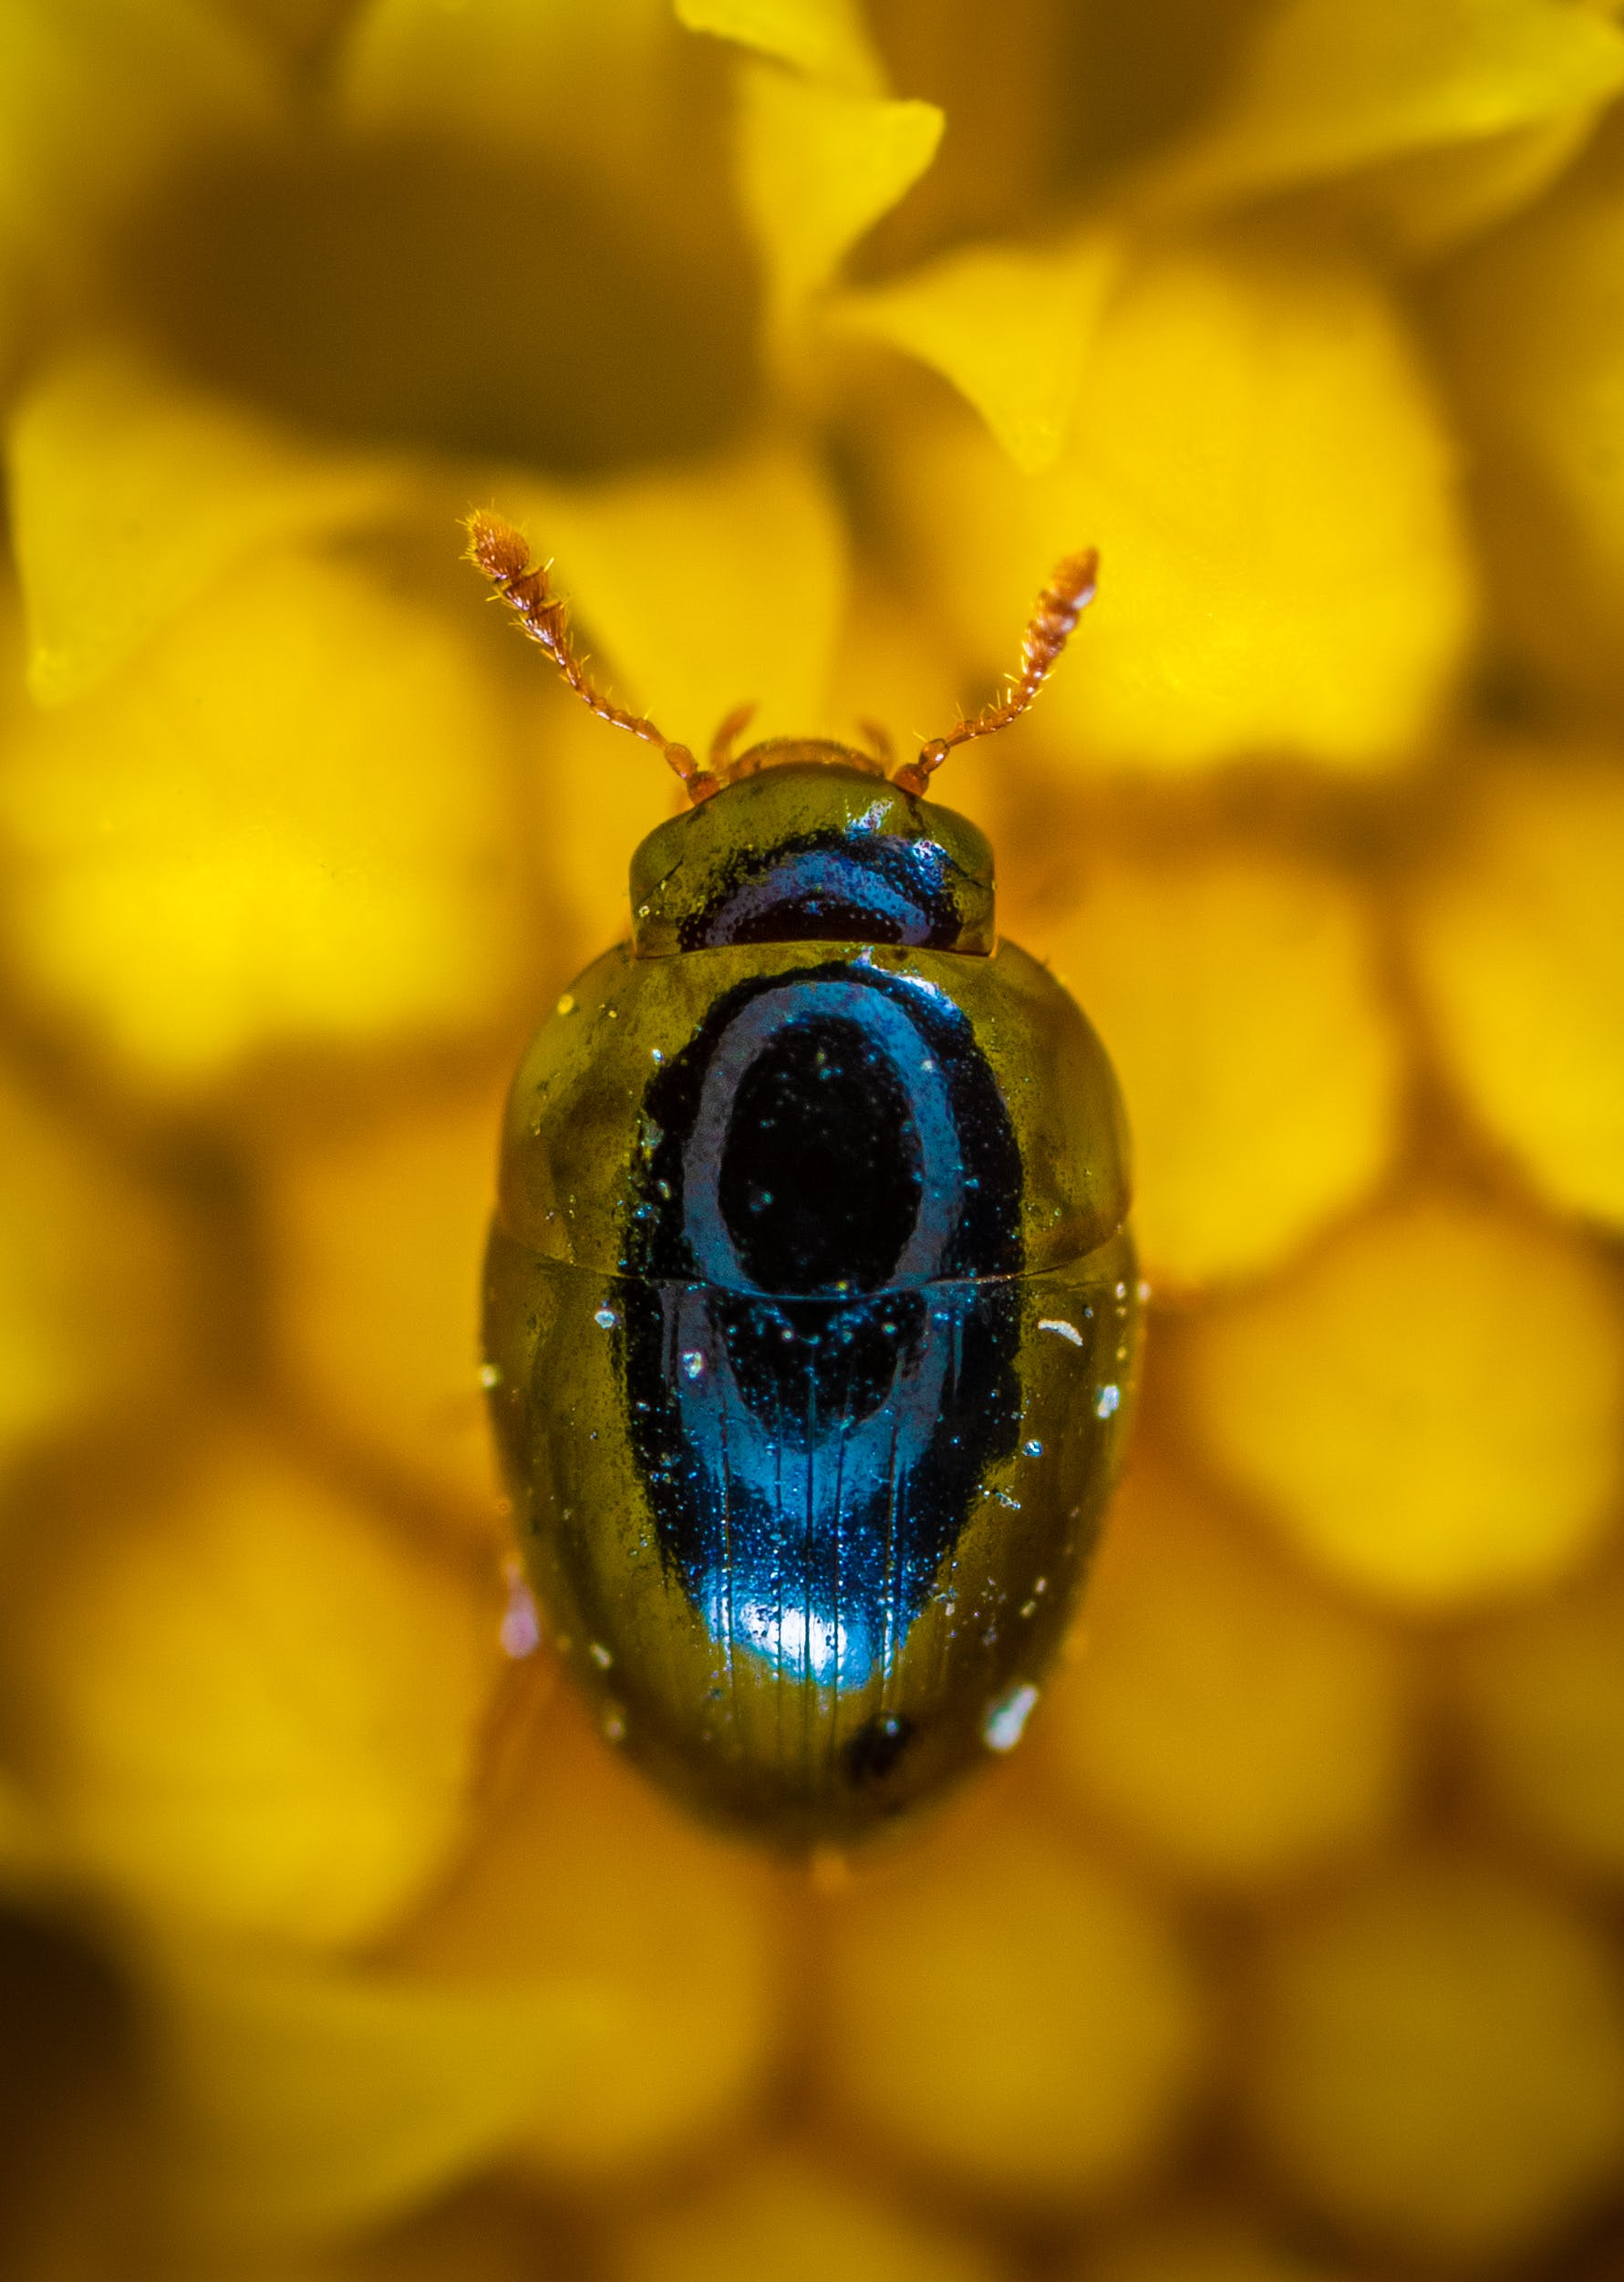 Close-up Photography of Blue Beetle